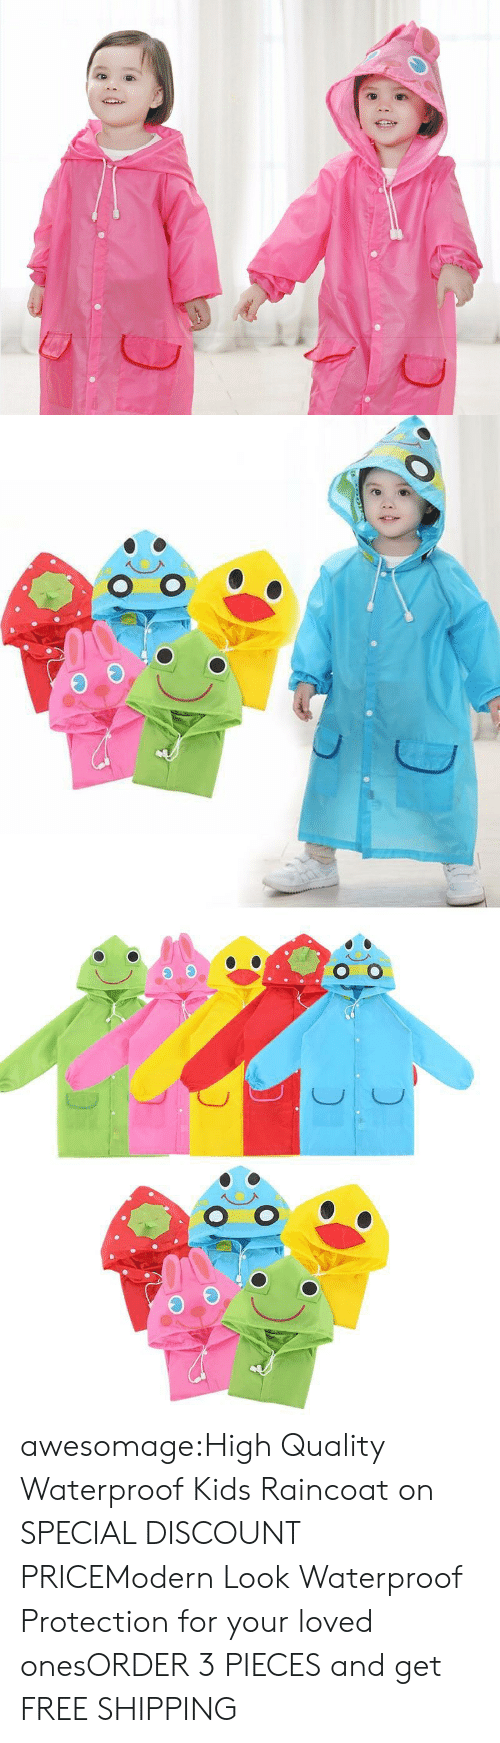 poncho: awesomage:High Quality Waterproof Kids Raincoat on SPECIAL DISCOUNT PRICEModern Look  Waterproof Protection for your loved onesORDER 3 PIECES and get FREE SHIPPING